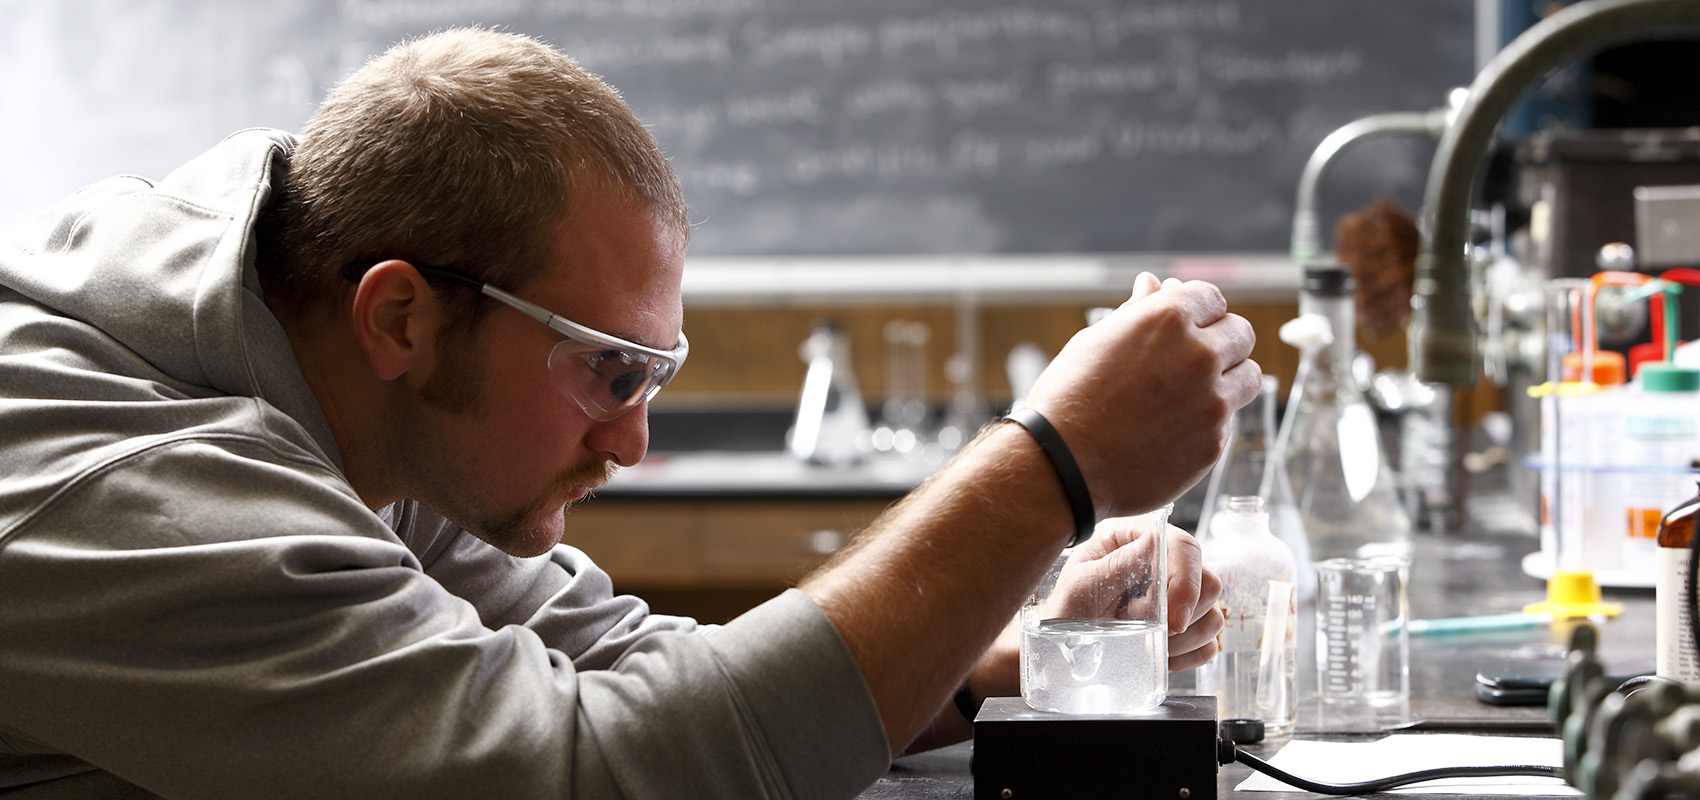 USF student in the science lab.